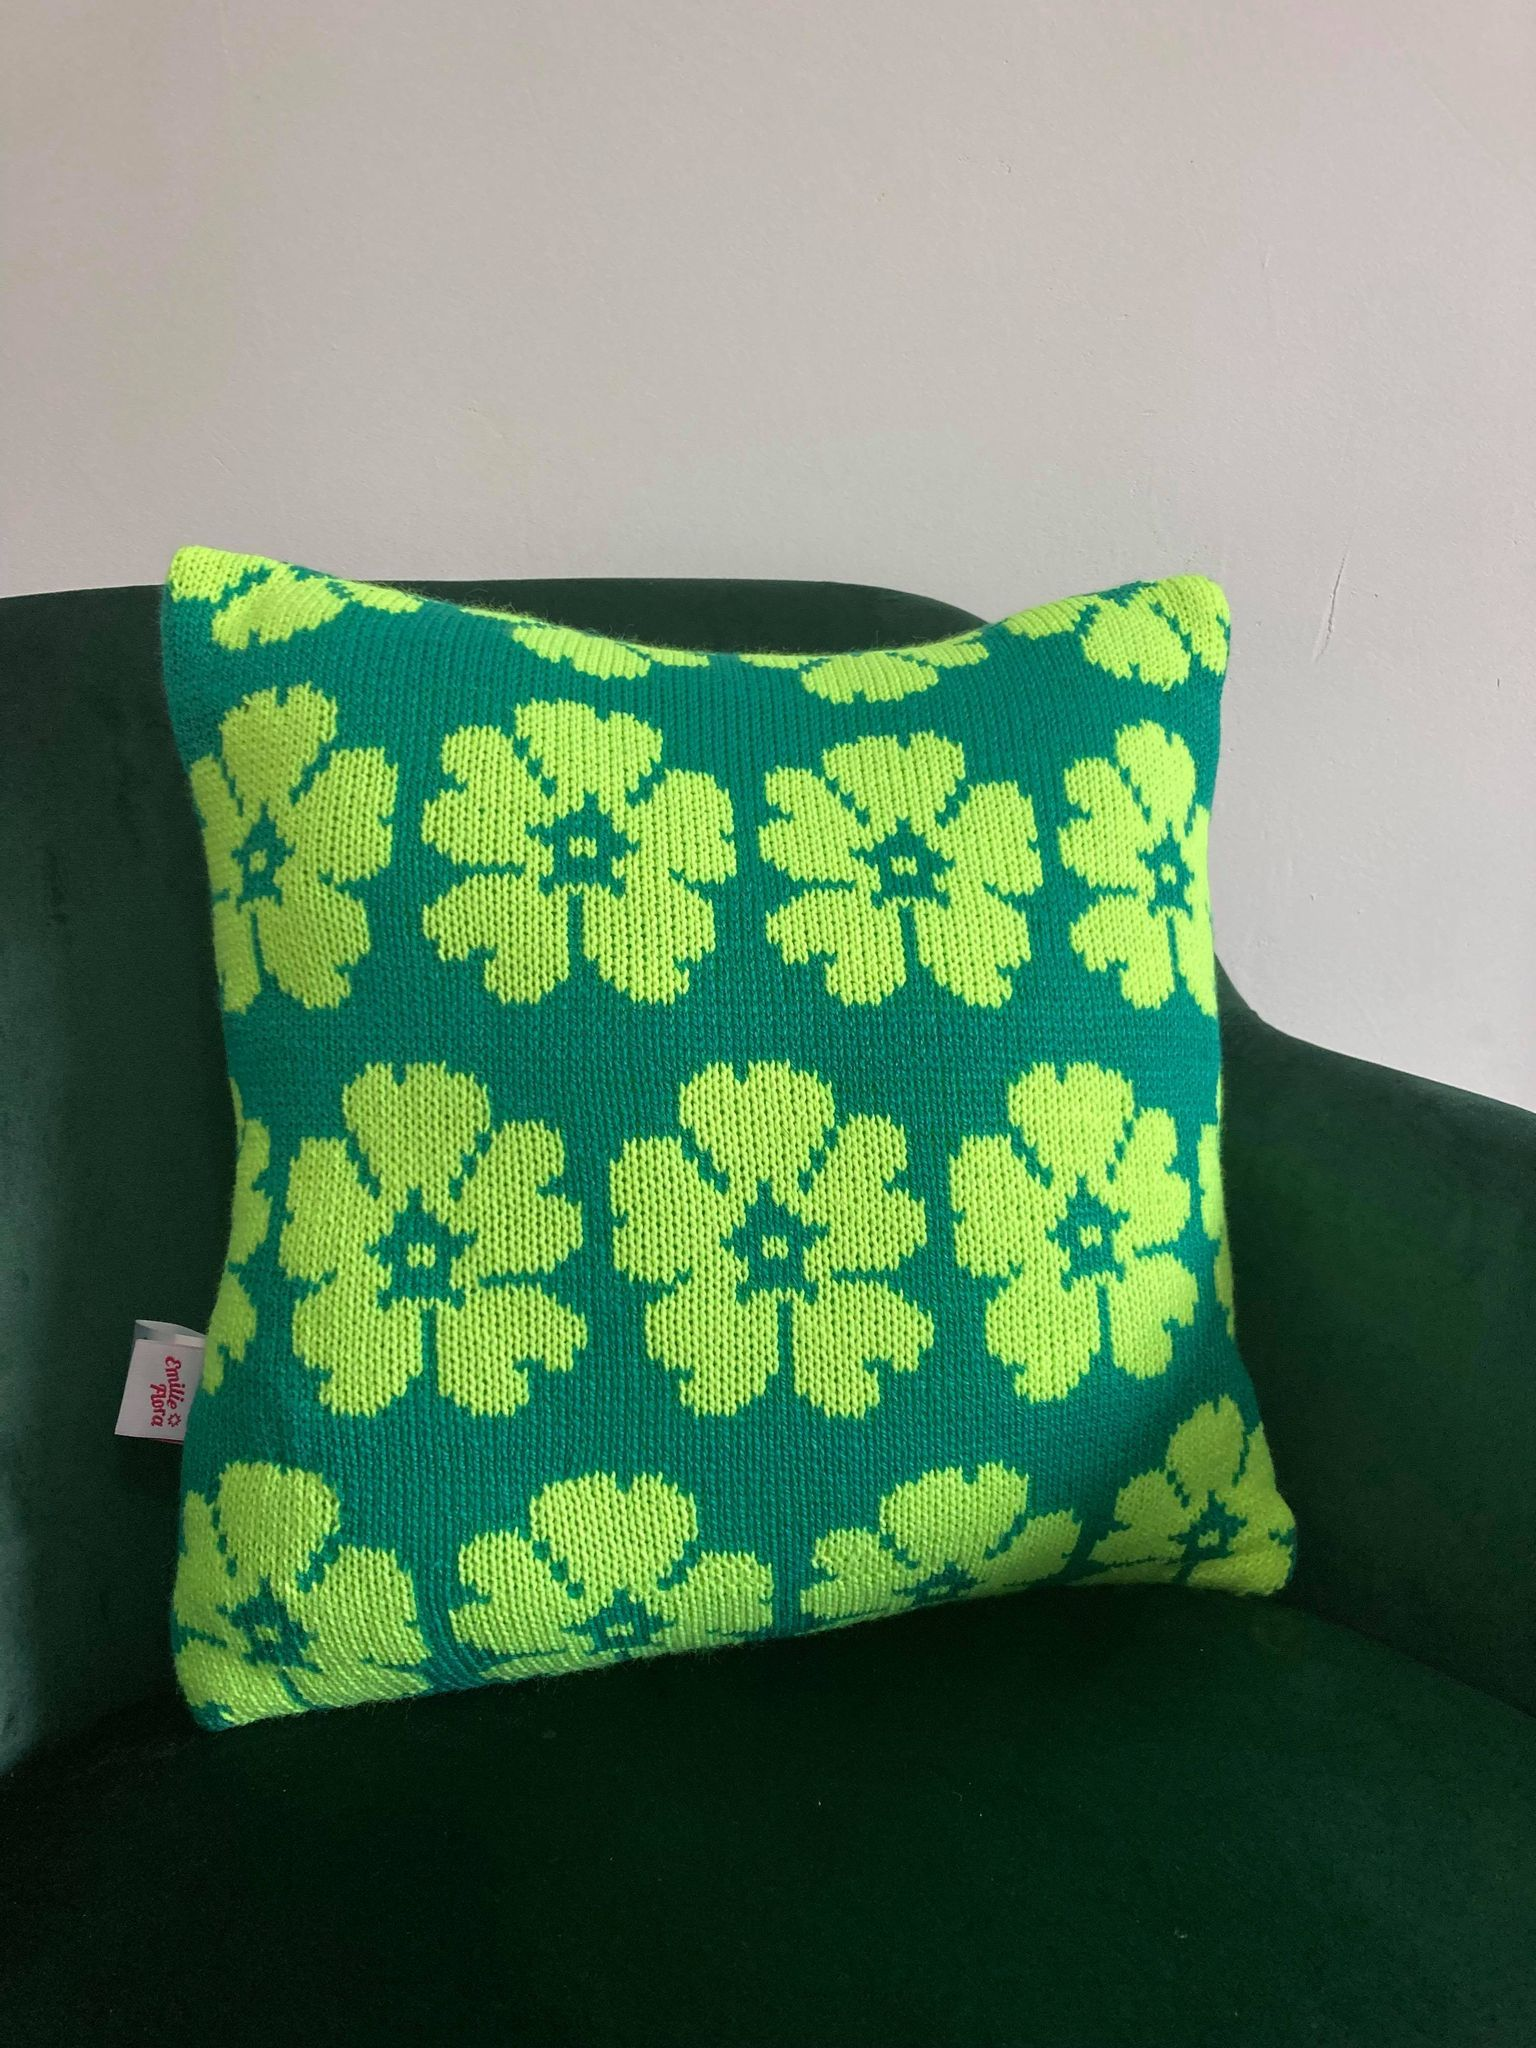 Periwinkle Cushion - Teal and Mint